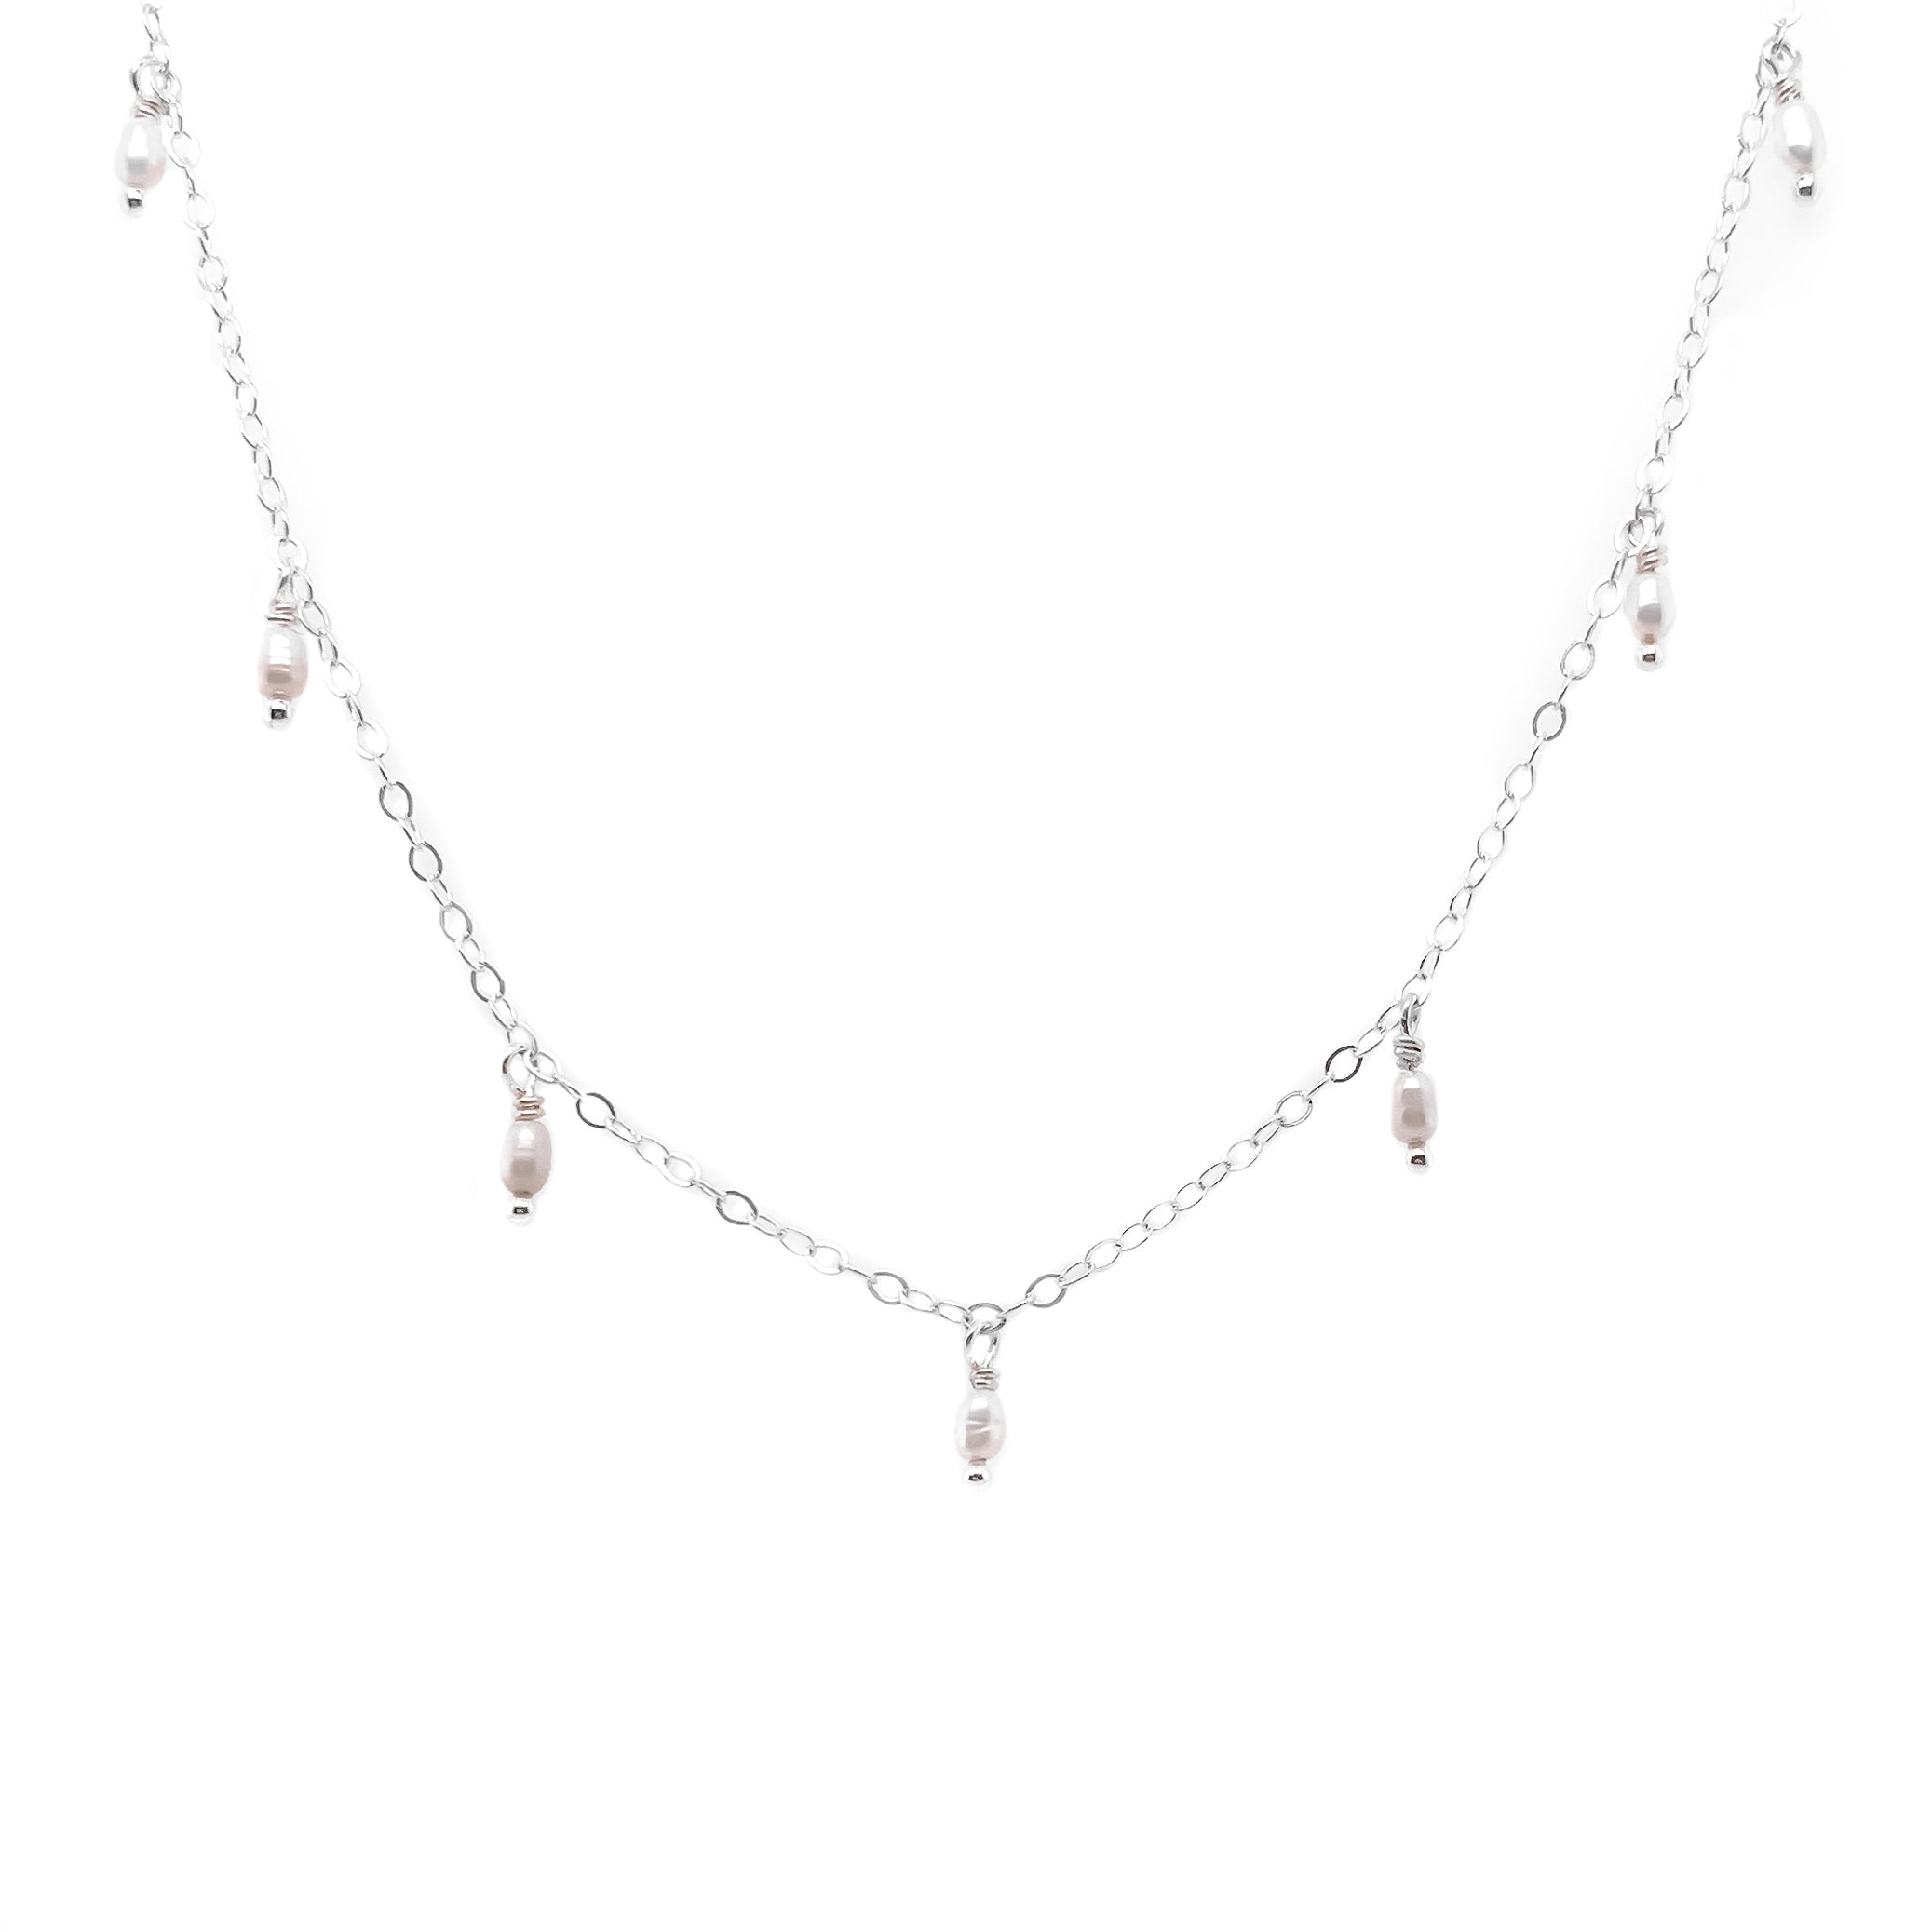 NEDA NECKLACE - Sterling Silver